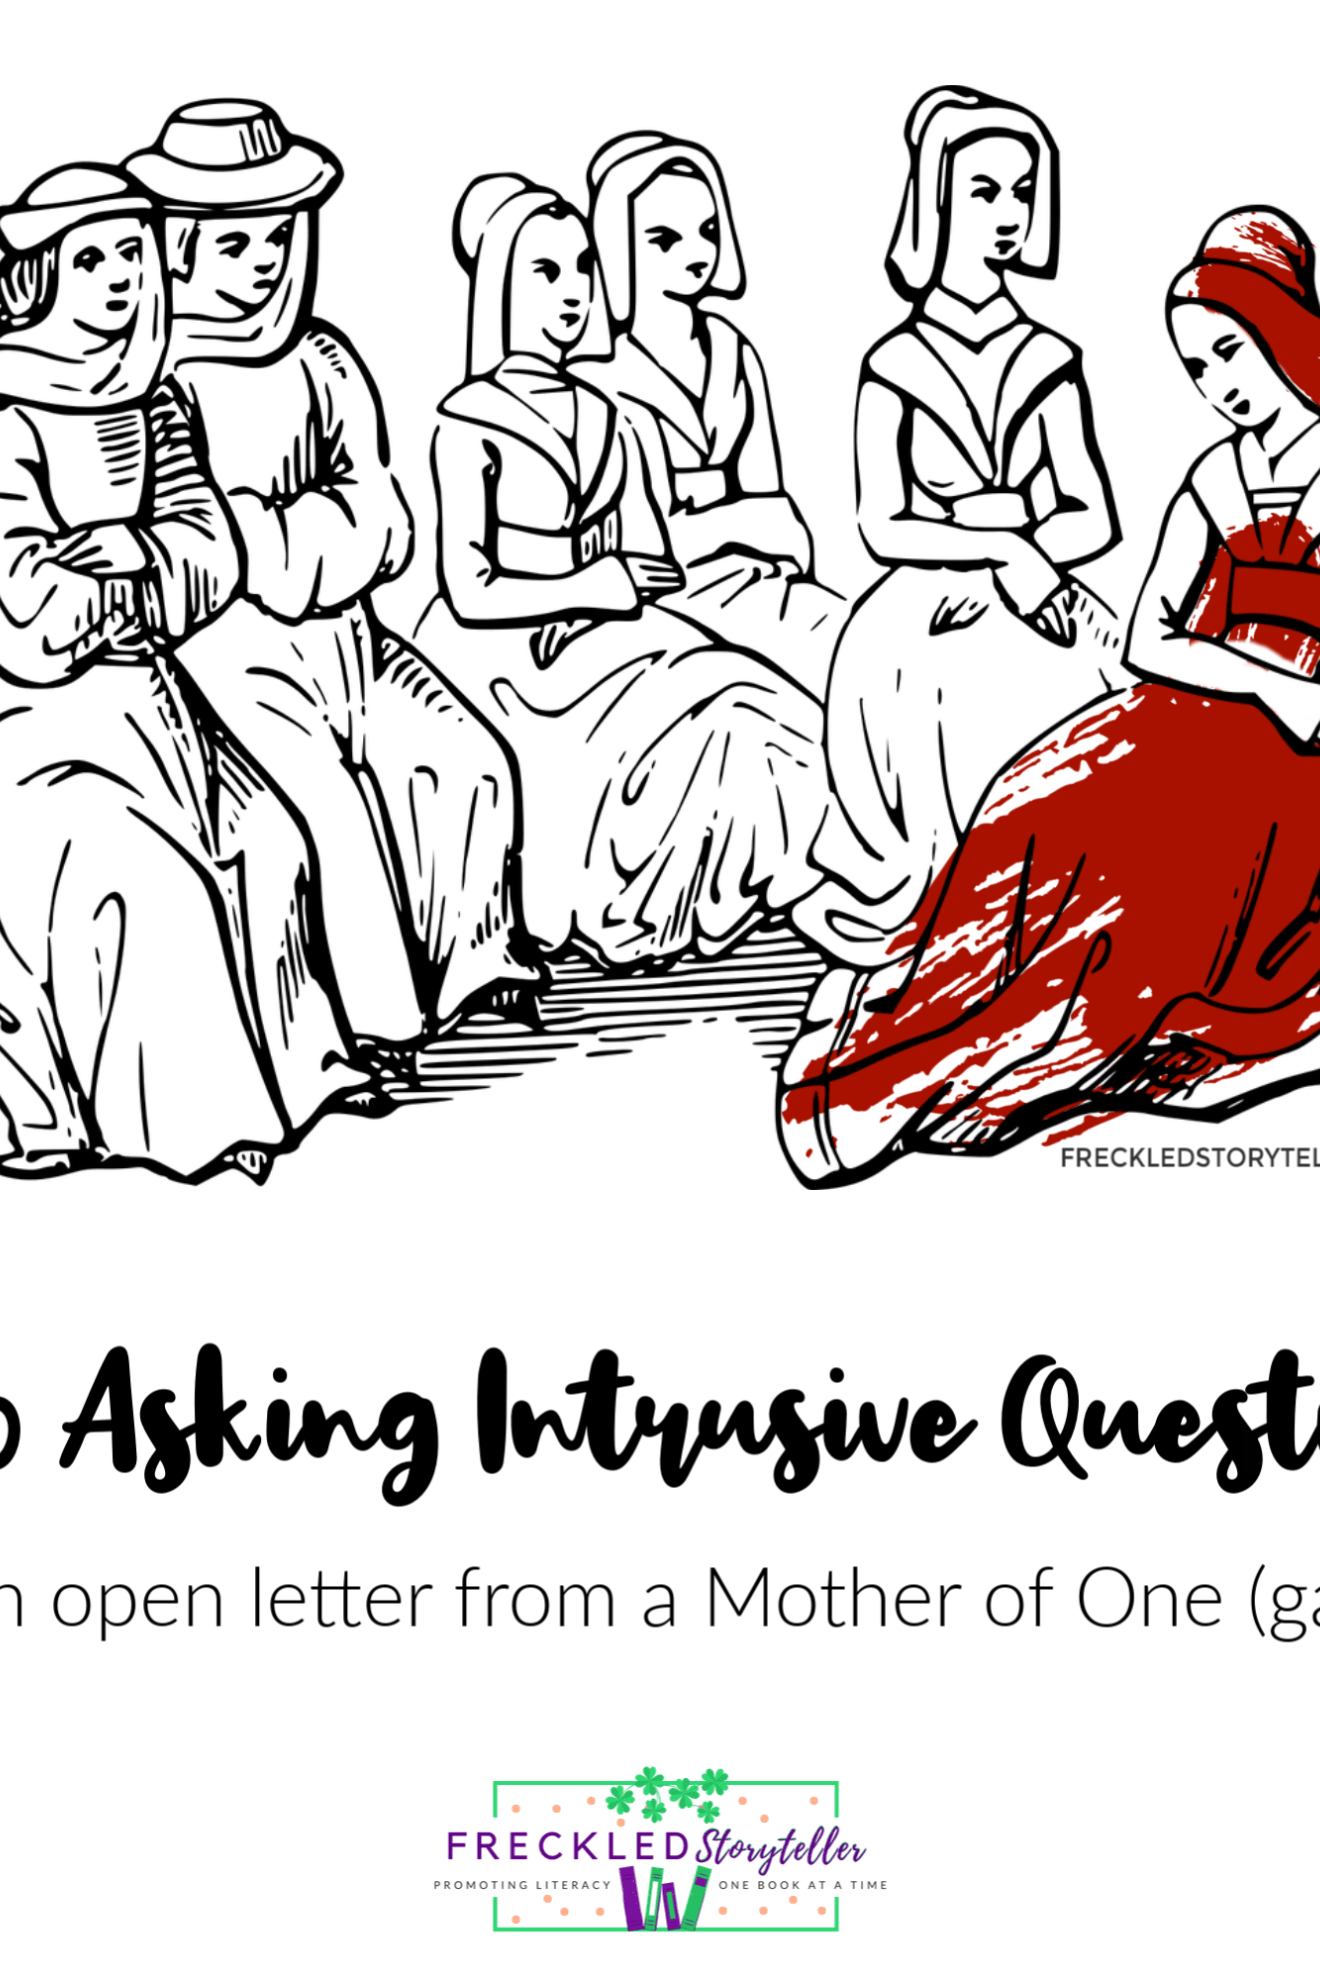 Stop Asking Intrusive Questions An Open Letter From A